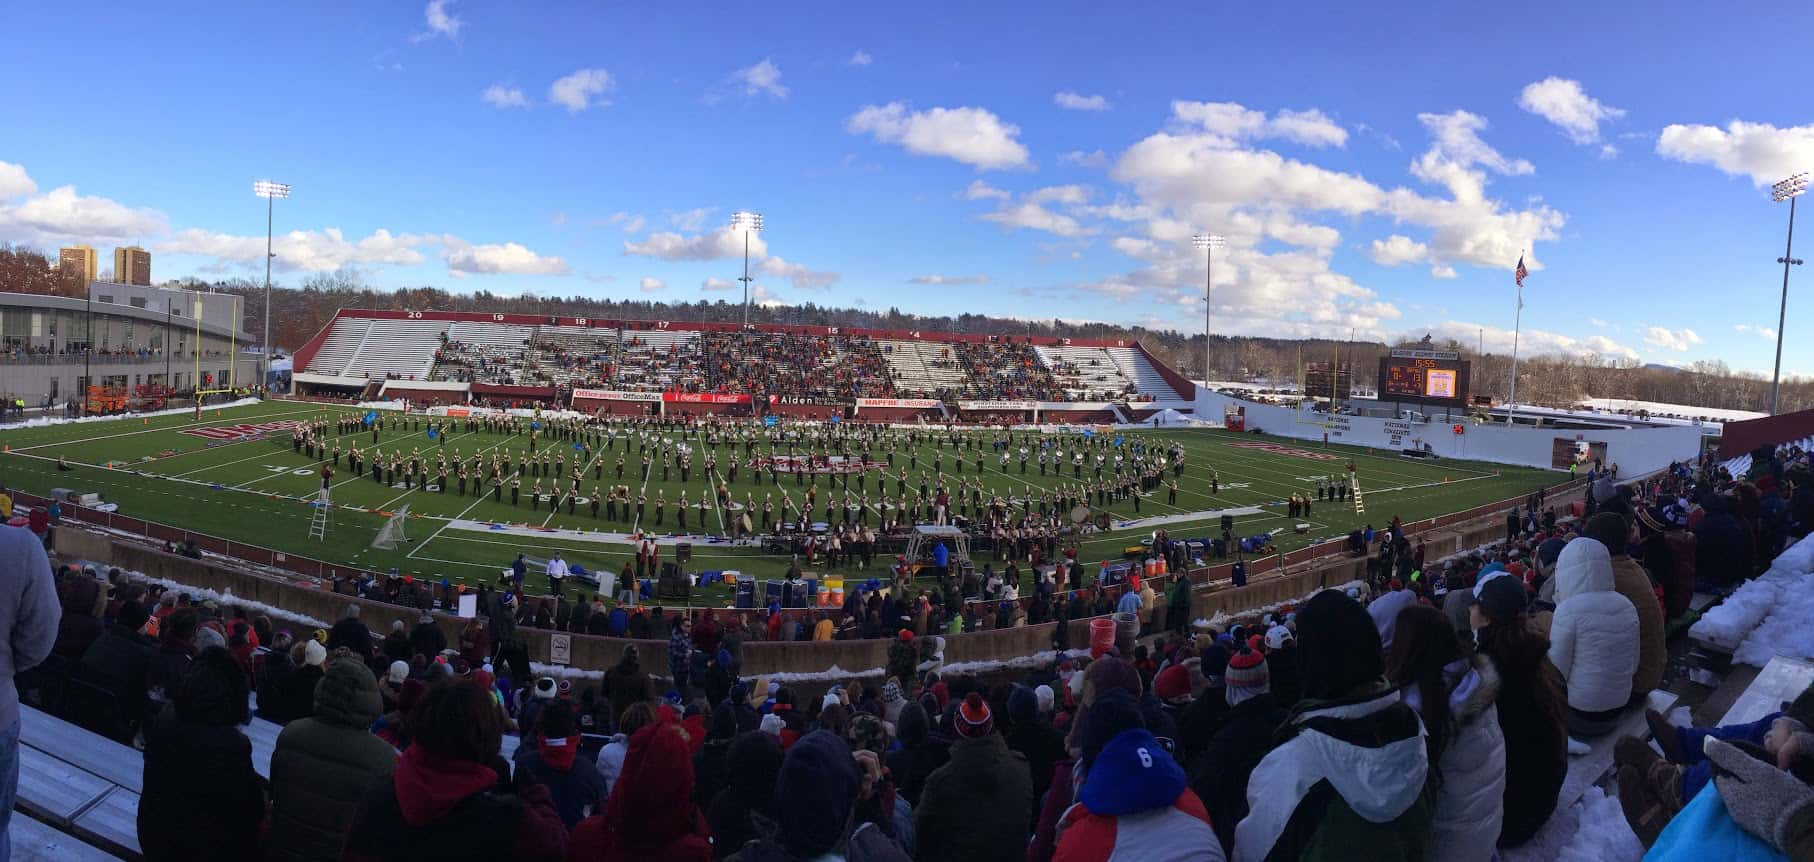 The highlight of a home football game at McGwirk Stadium at UMass is the band.